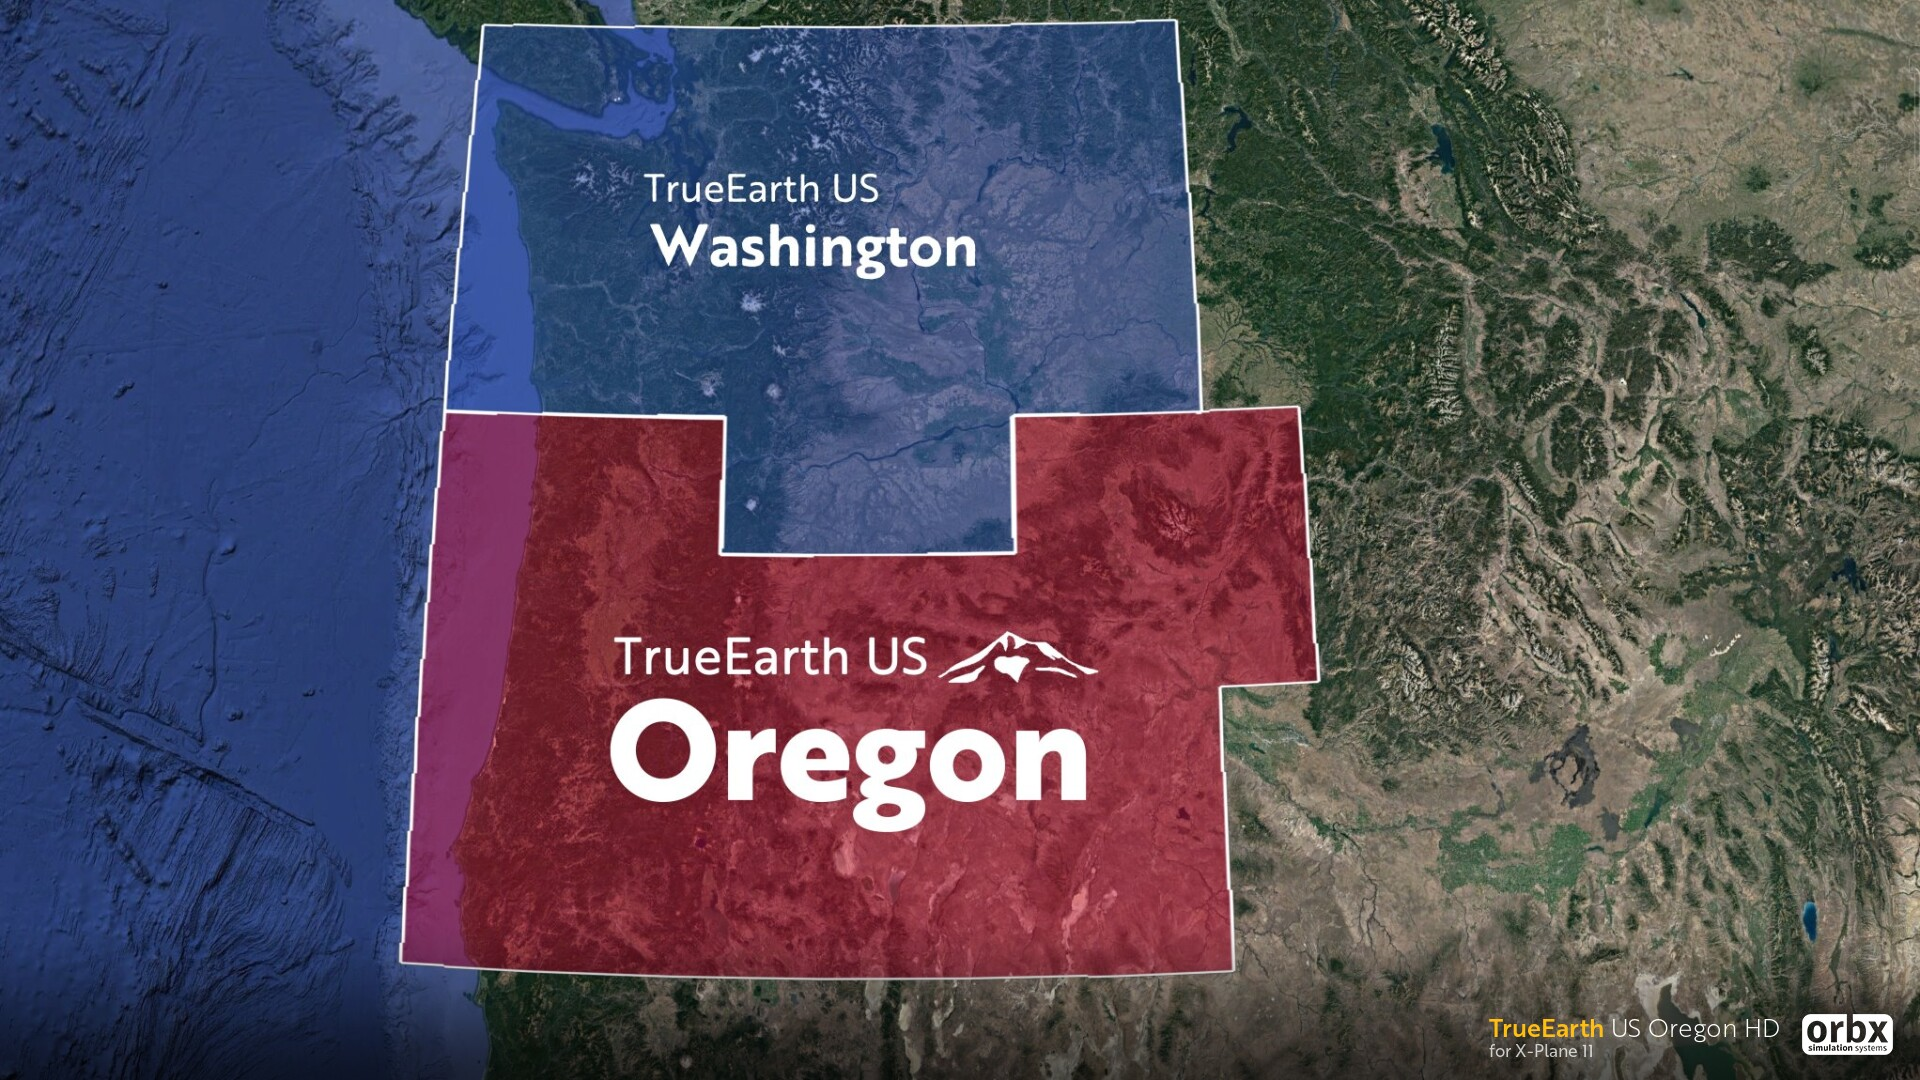 TrueEarth US Oregon: The Beaver State comes to life! - Preview